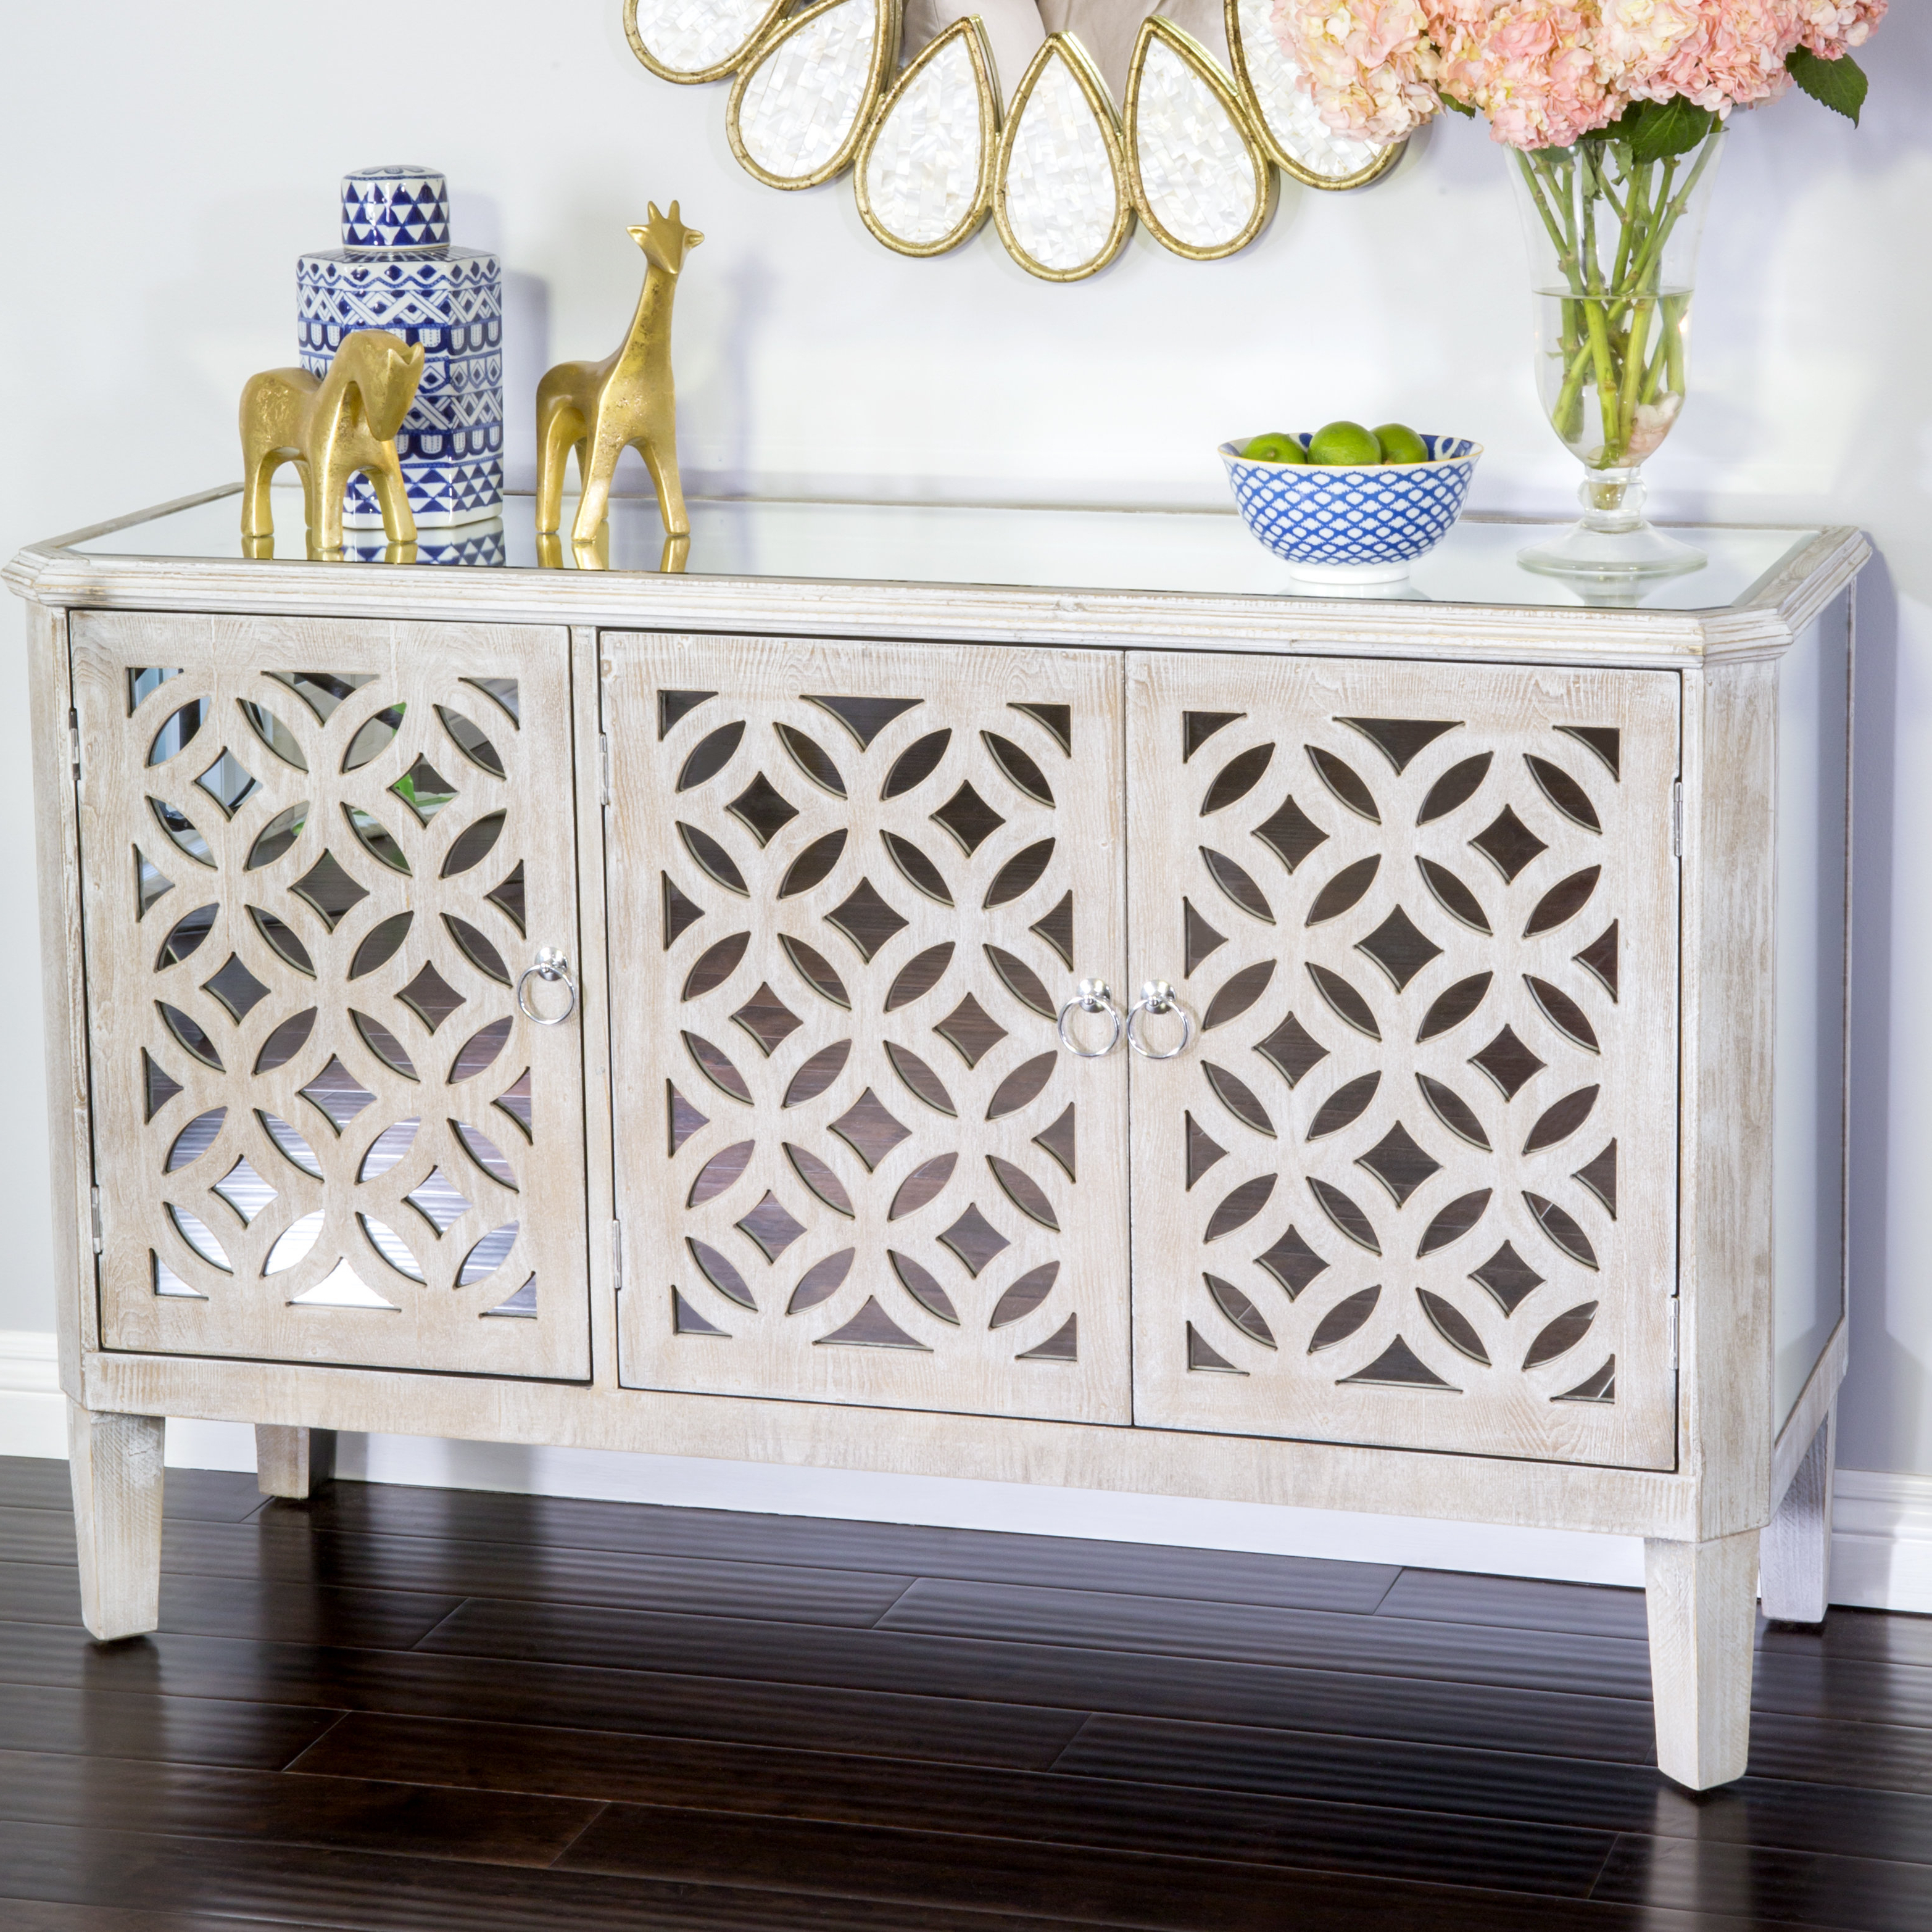 Deville Russelle Sideboards Pertaining To Recent Farmhouse & Rustic Distressed Finish Sideboards & Buffets (View 6 of 20)